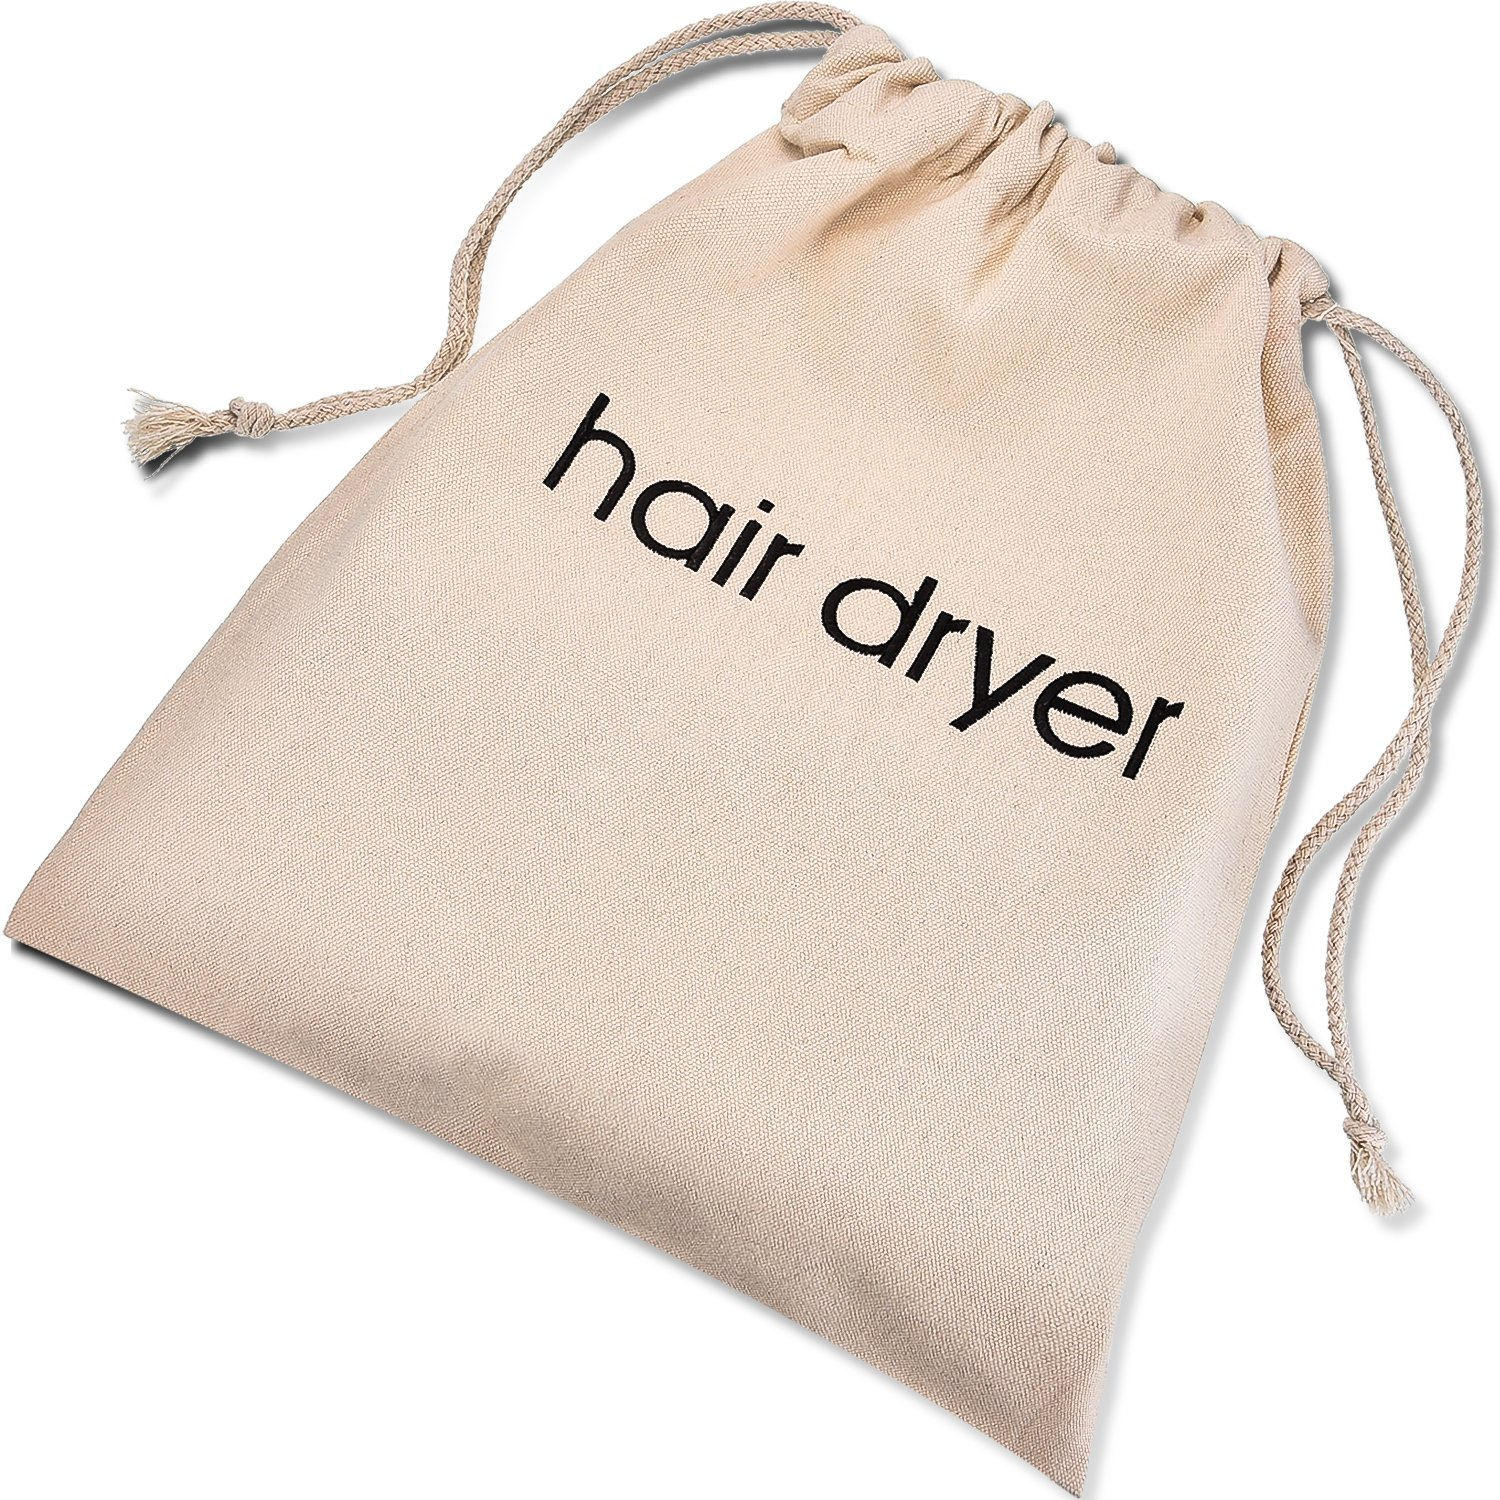 Bememo Hair Dryer Bags Cotton Drawstring Bag Container Hairdryer Bag 11.8 by 13.8 Inch Beige